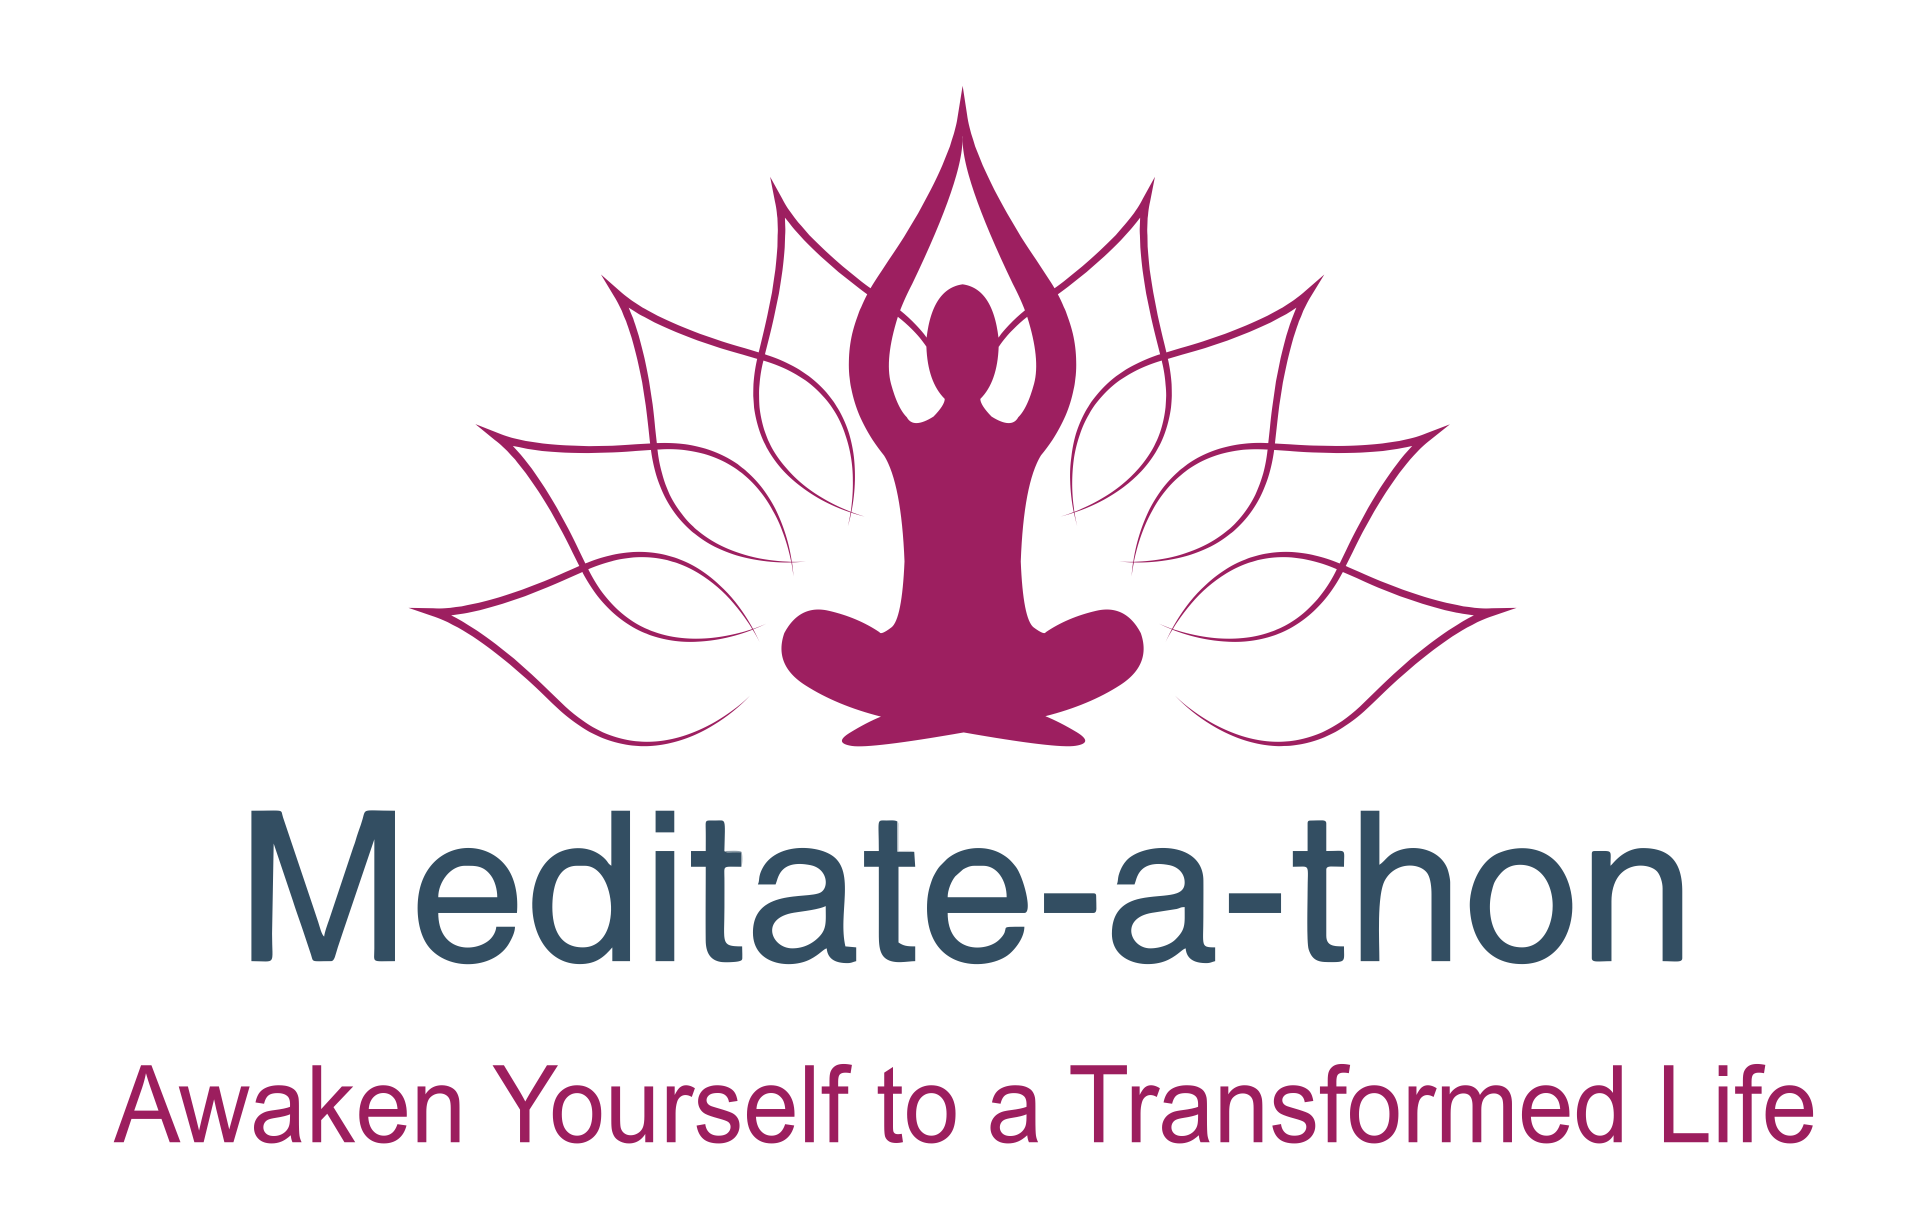 meditate-a-thon official